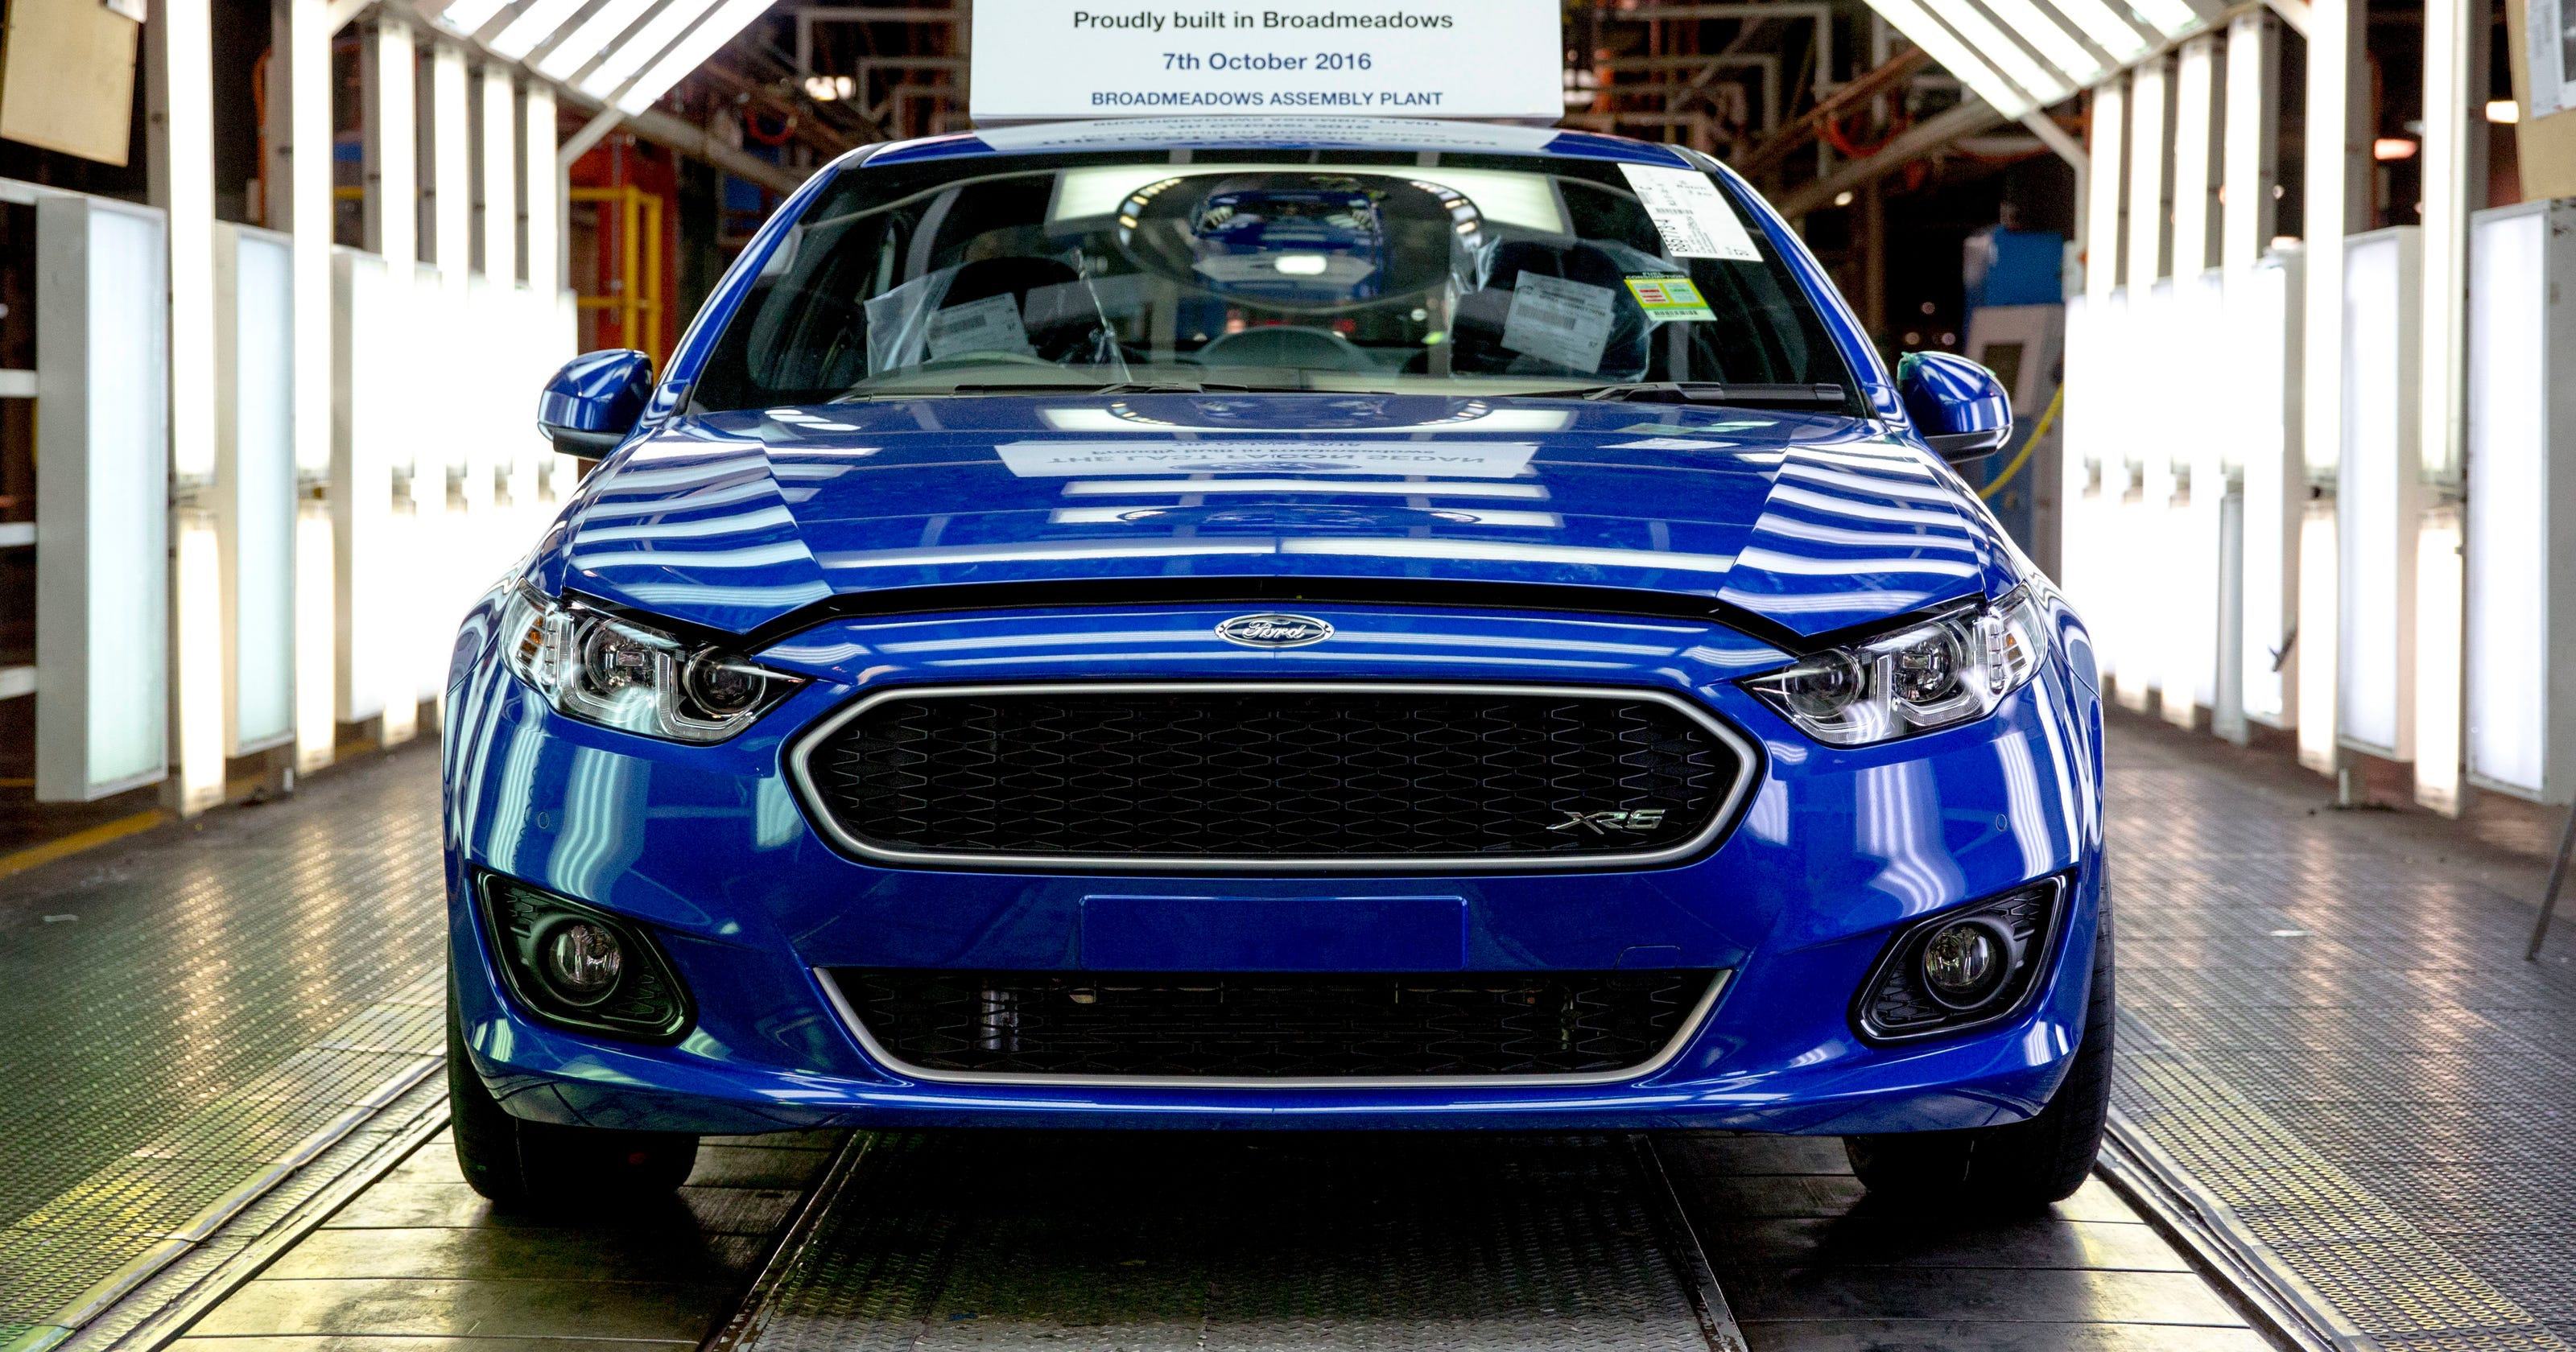 After 91 years fords australian car production ends